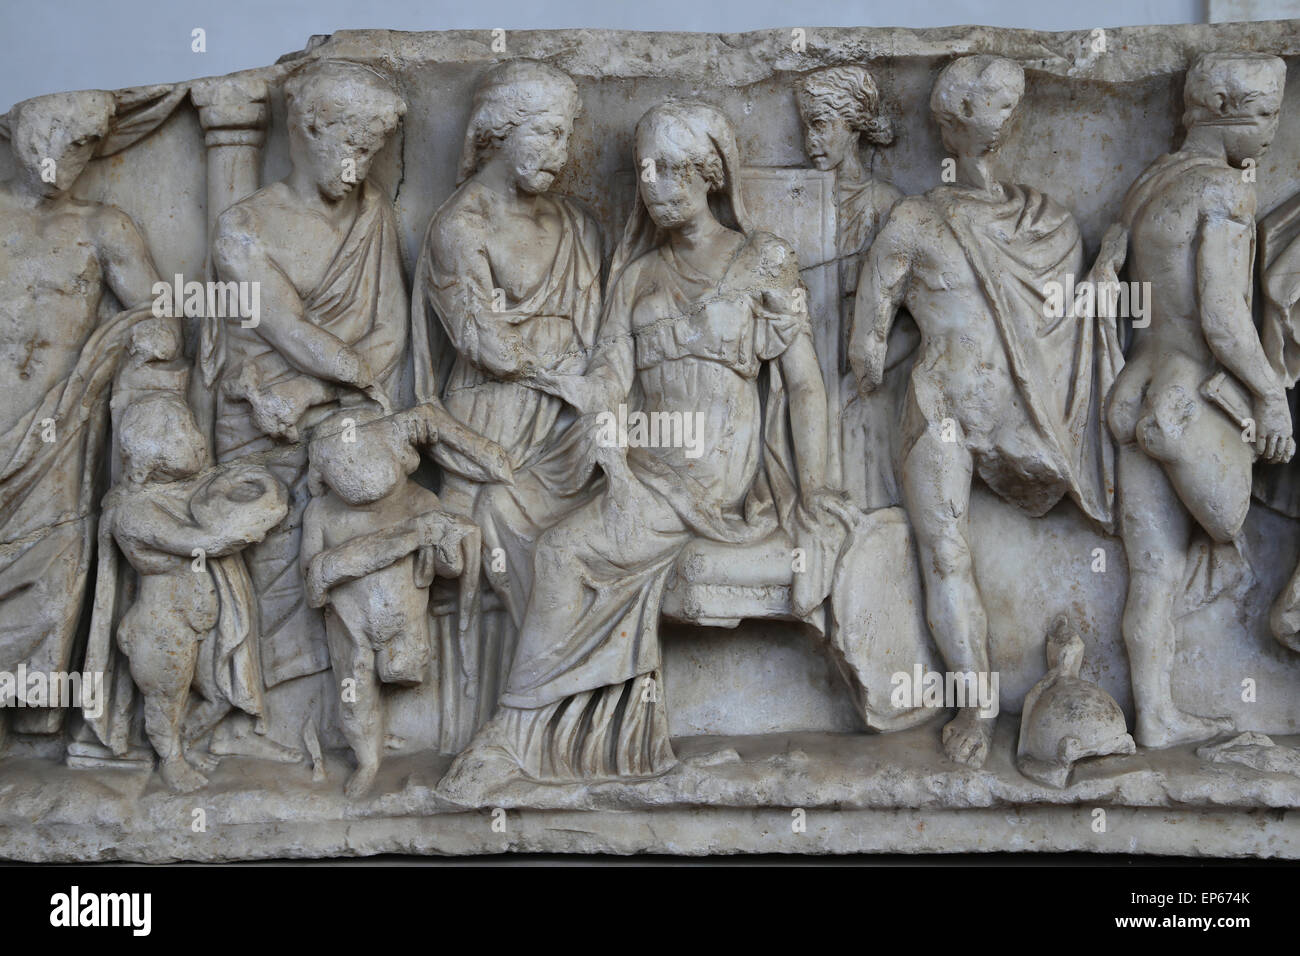 Sarcophagus. Myth of Medea. Sending of gifts to Creusa's death. Marble. 150-170 AD. Rome. National Roman Museum. - Stock Image